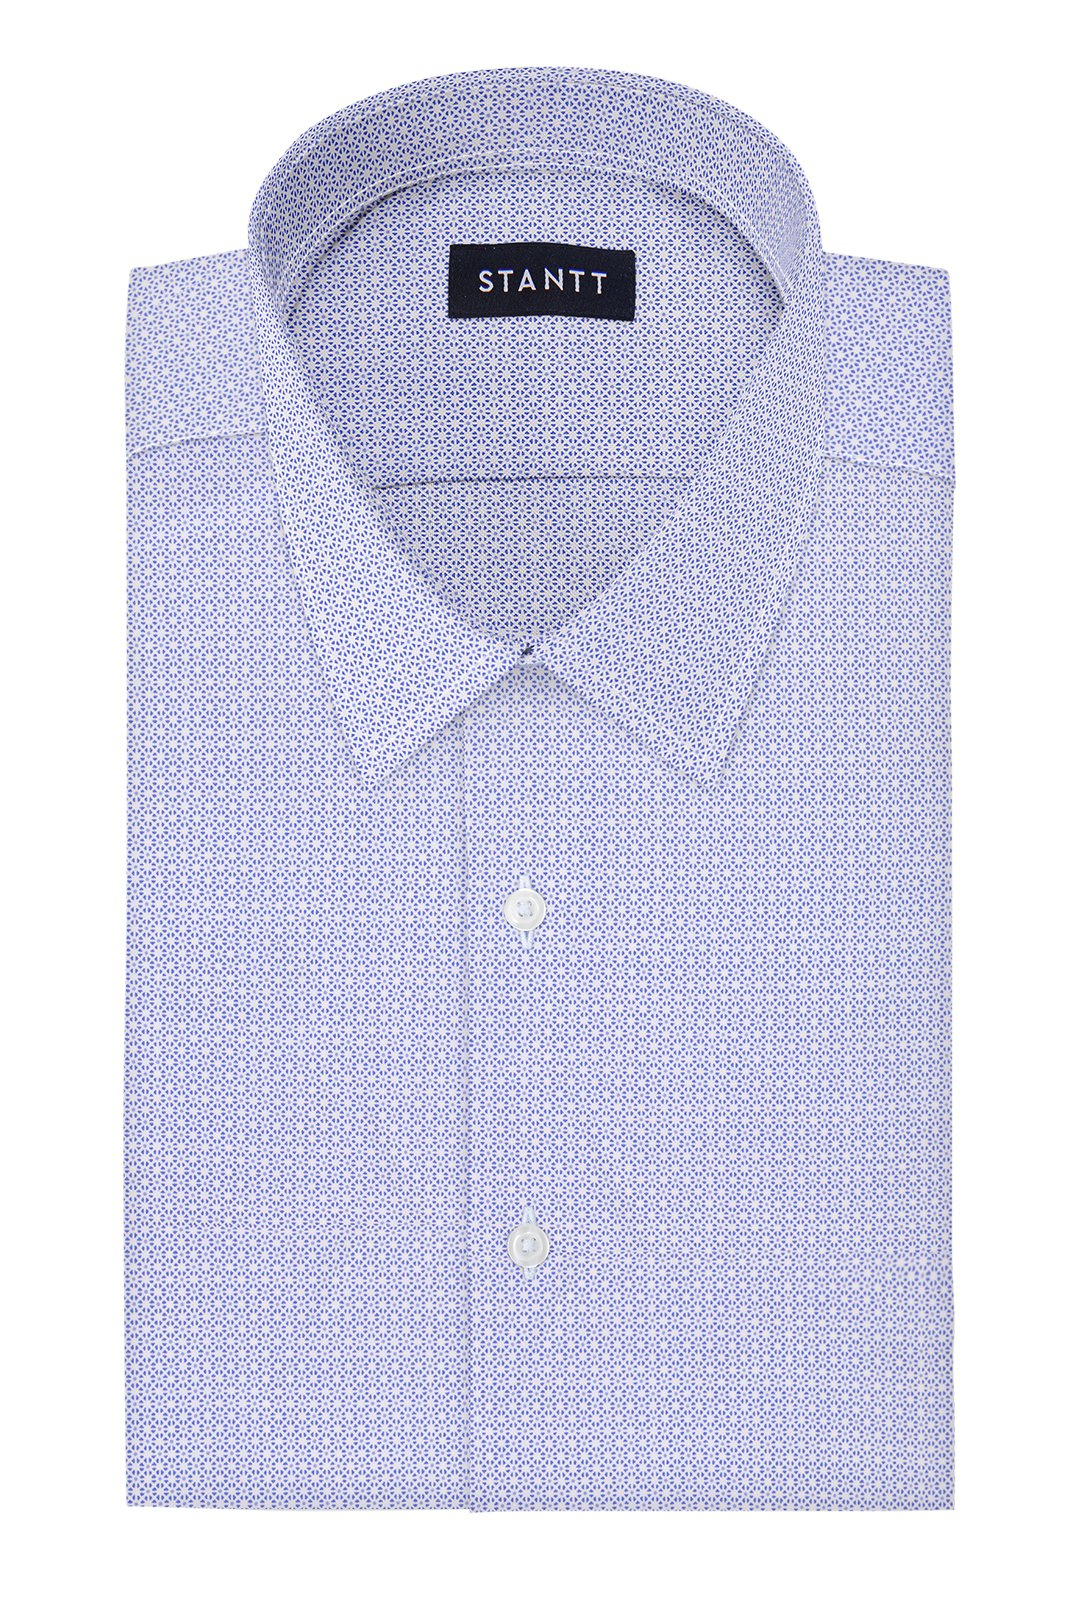 Performance Sky Blue Mosaic Print: Semi-Spread Collar, Barrel Cuff